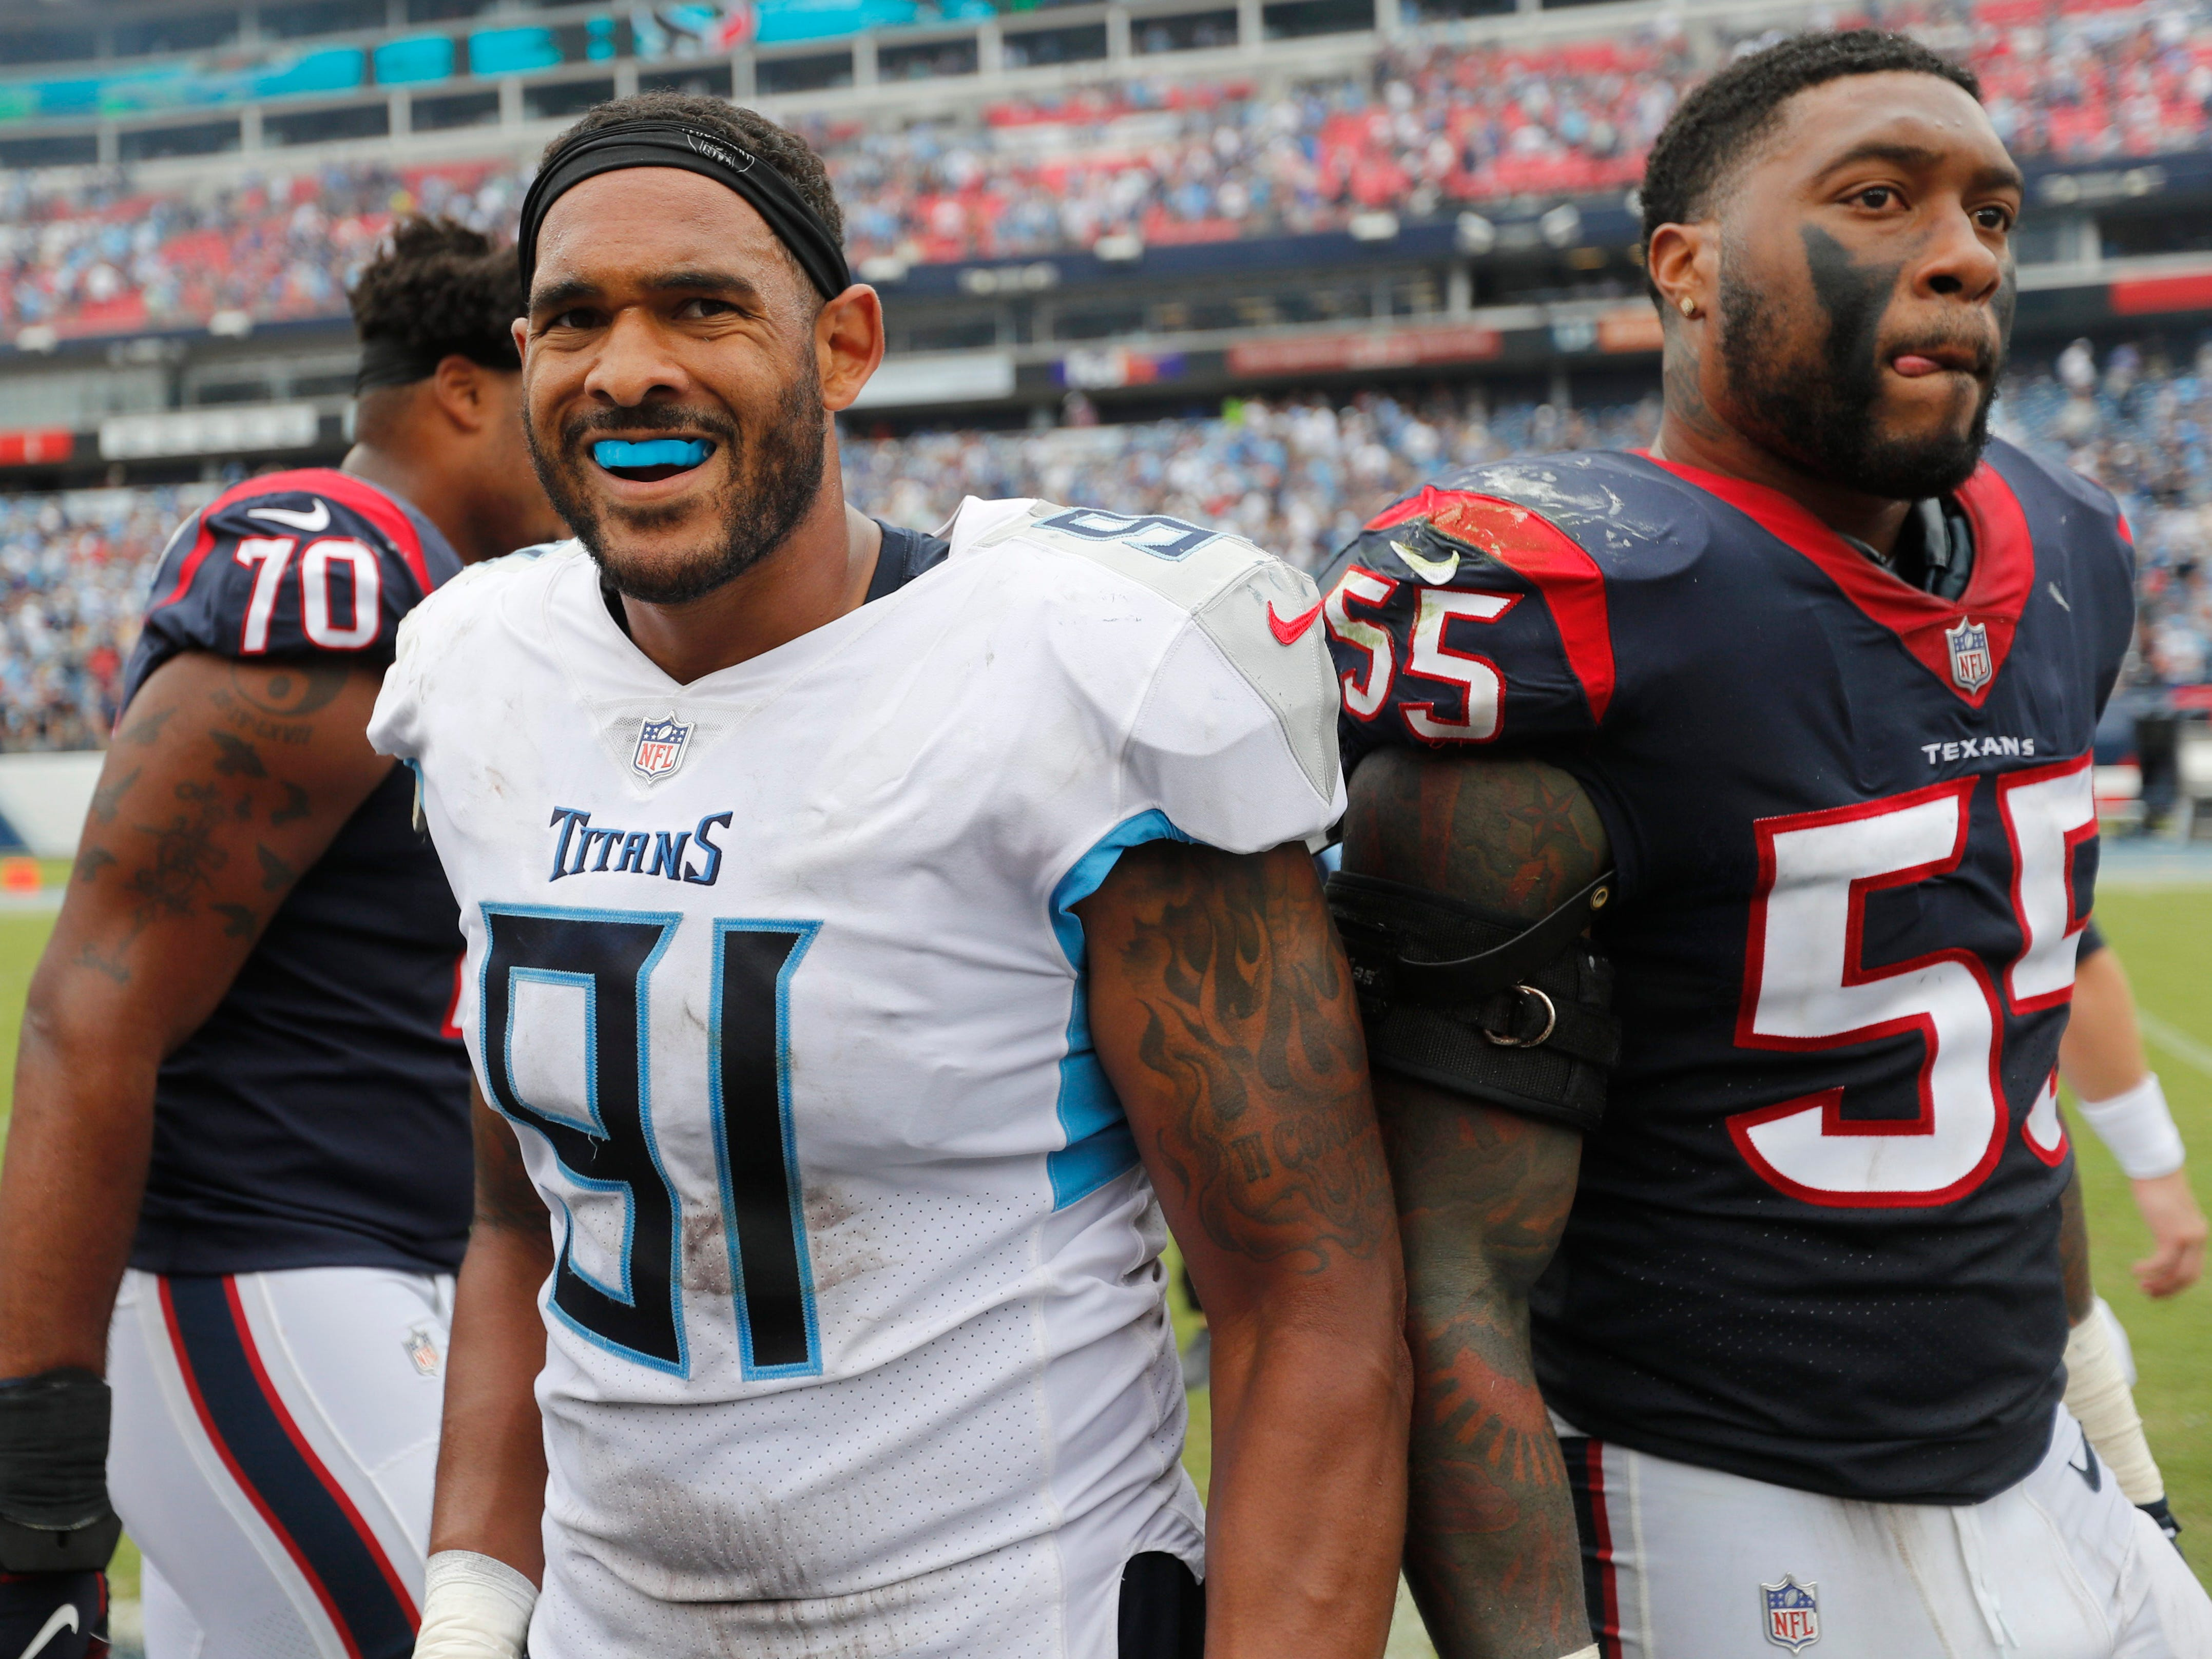 Titans linebacker Derrick Morgan (91) and Texans linebacker Benardrick McKinney (55) react after the Titans' win at Nissan Stadium Sunday, Sept. 16, 2018, in Nashville, Tenn.